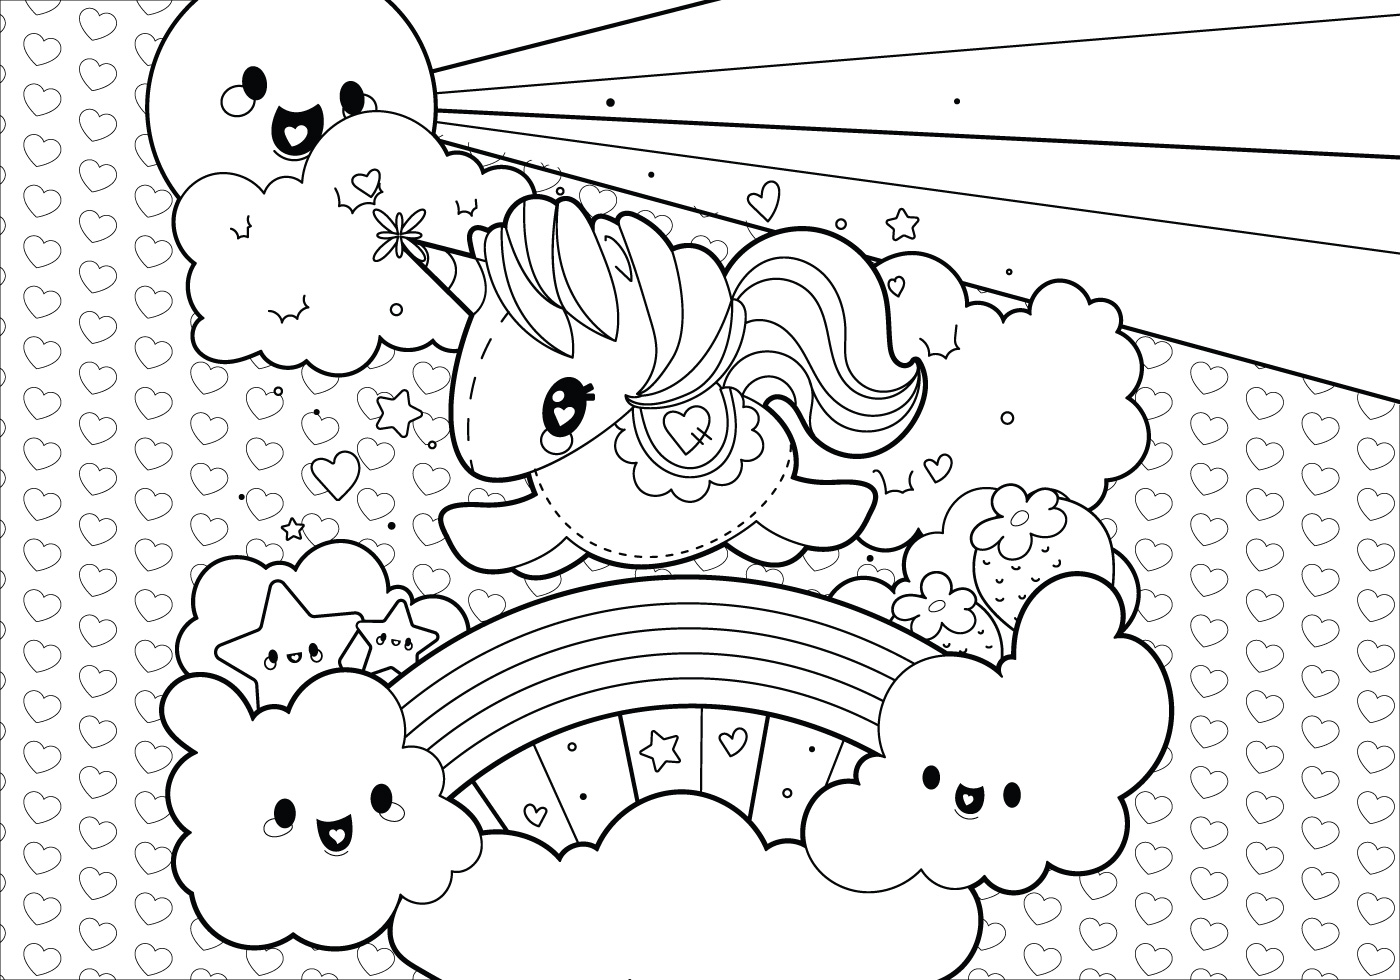 Rainbow Unicorn Scene Coloring Page Download Free Vector